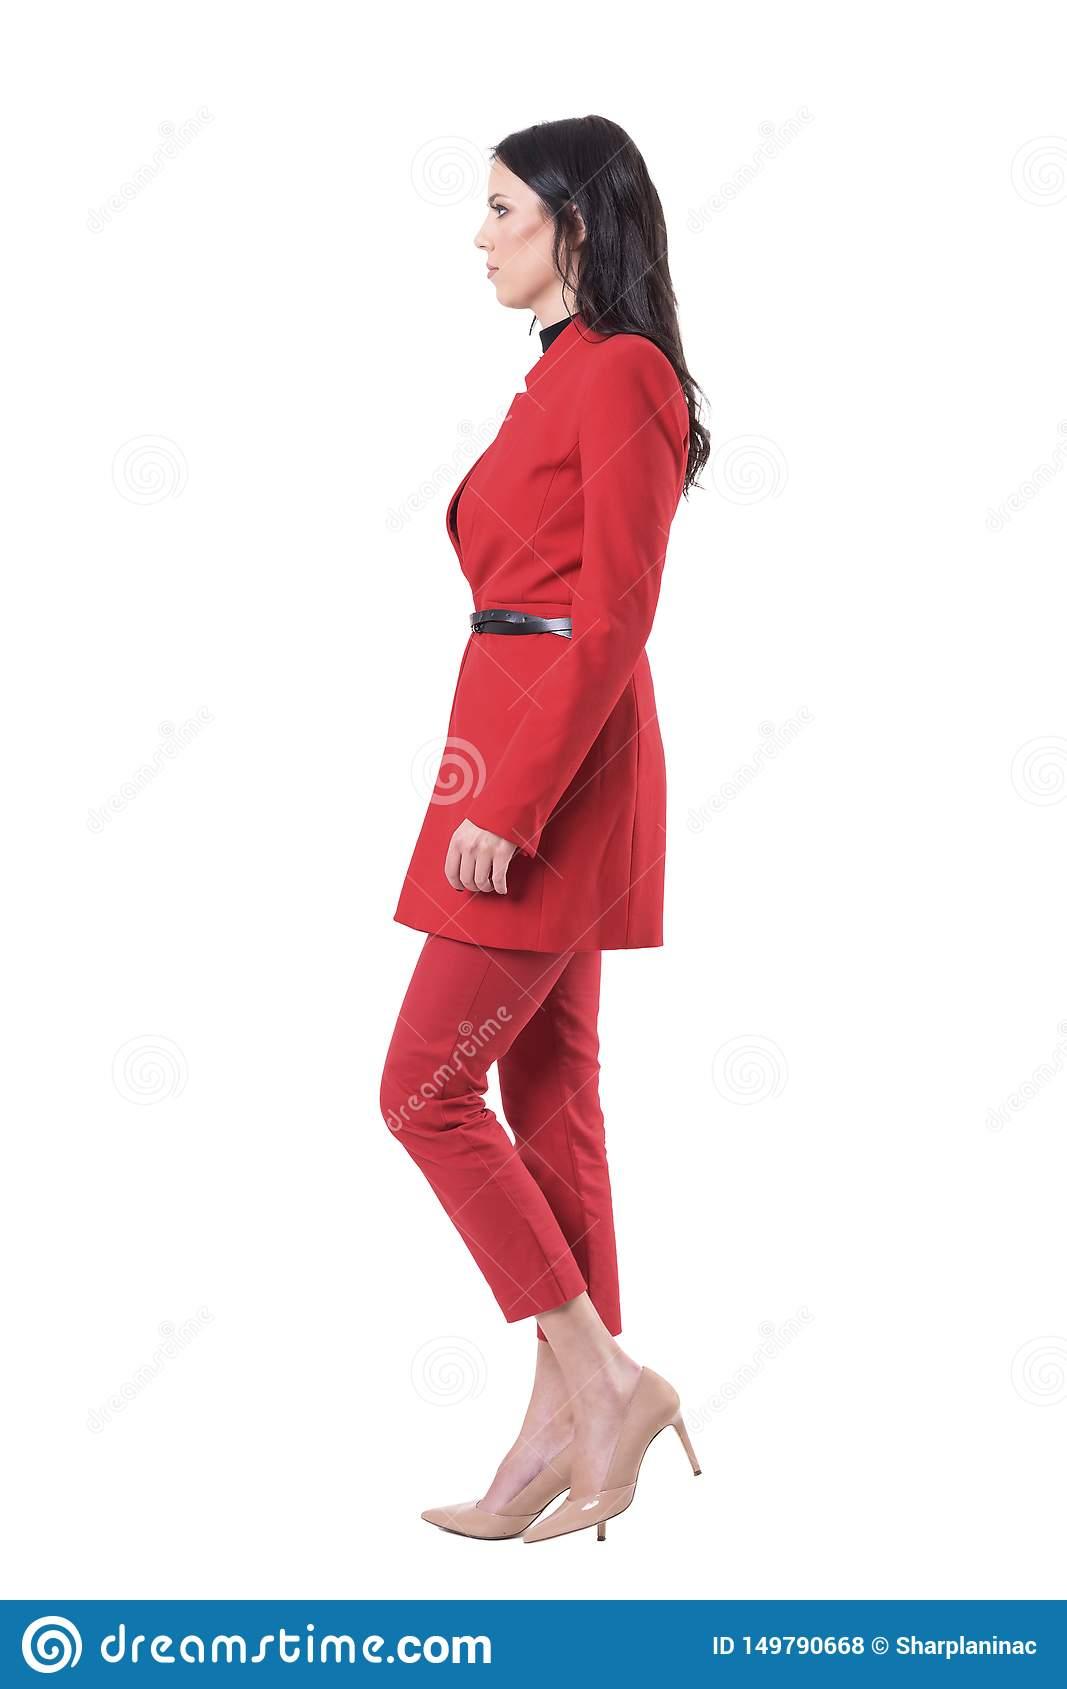 Side view of confident serious business woman in red suit walking and looking ahead.